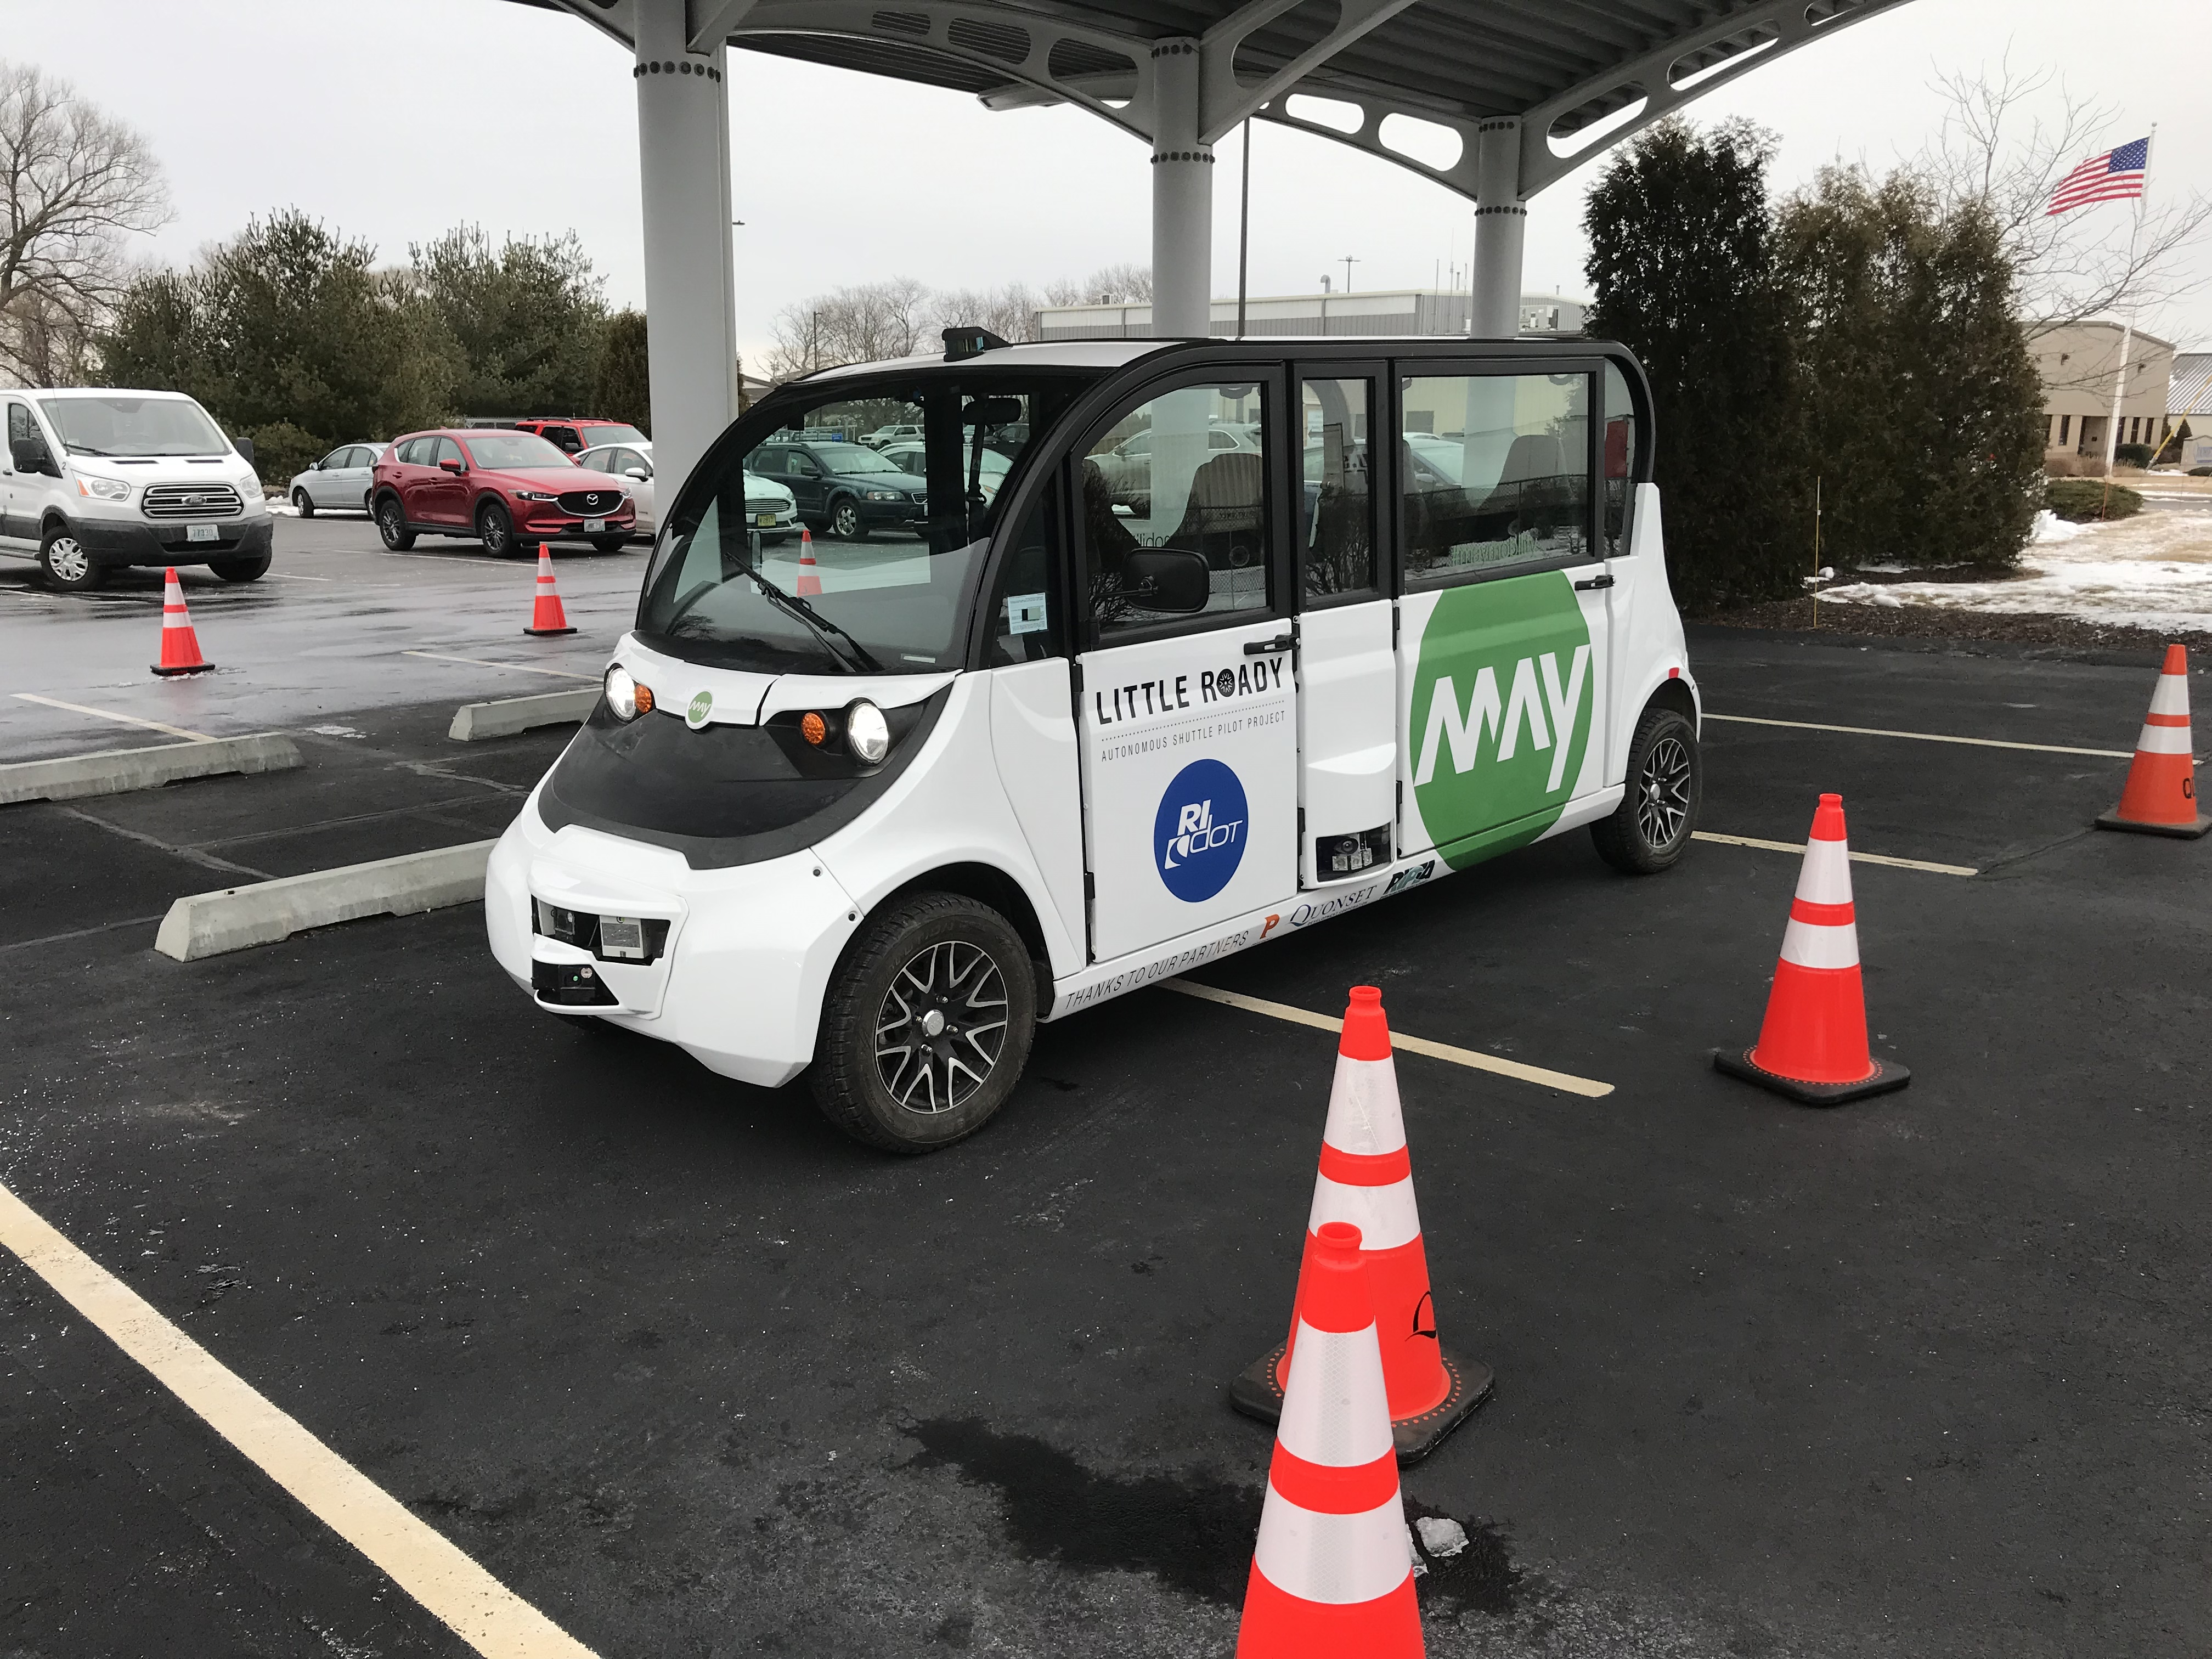 One of the autonomous vehicles, at a demonstration on February 20th, 2019.